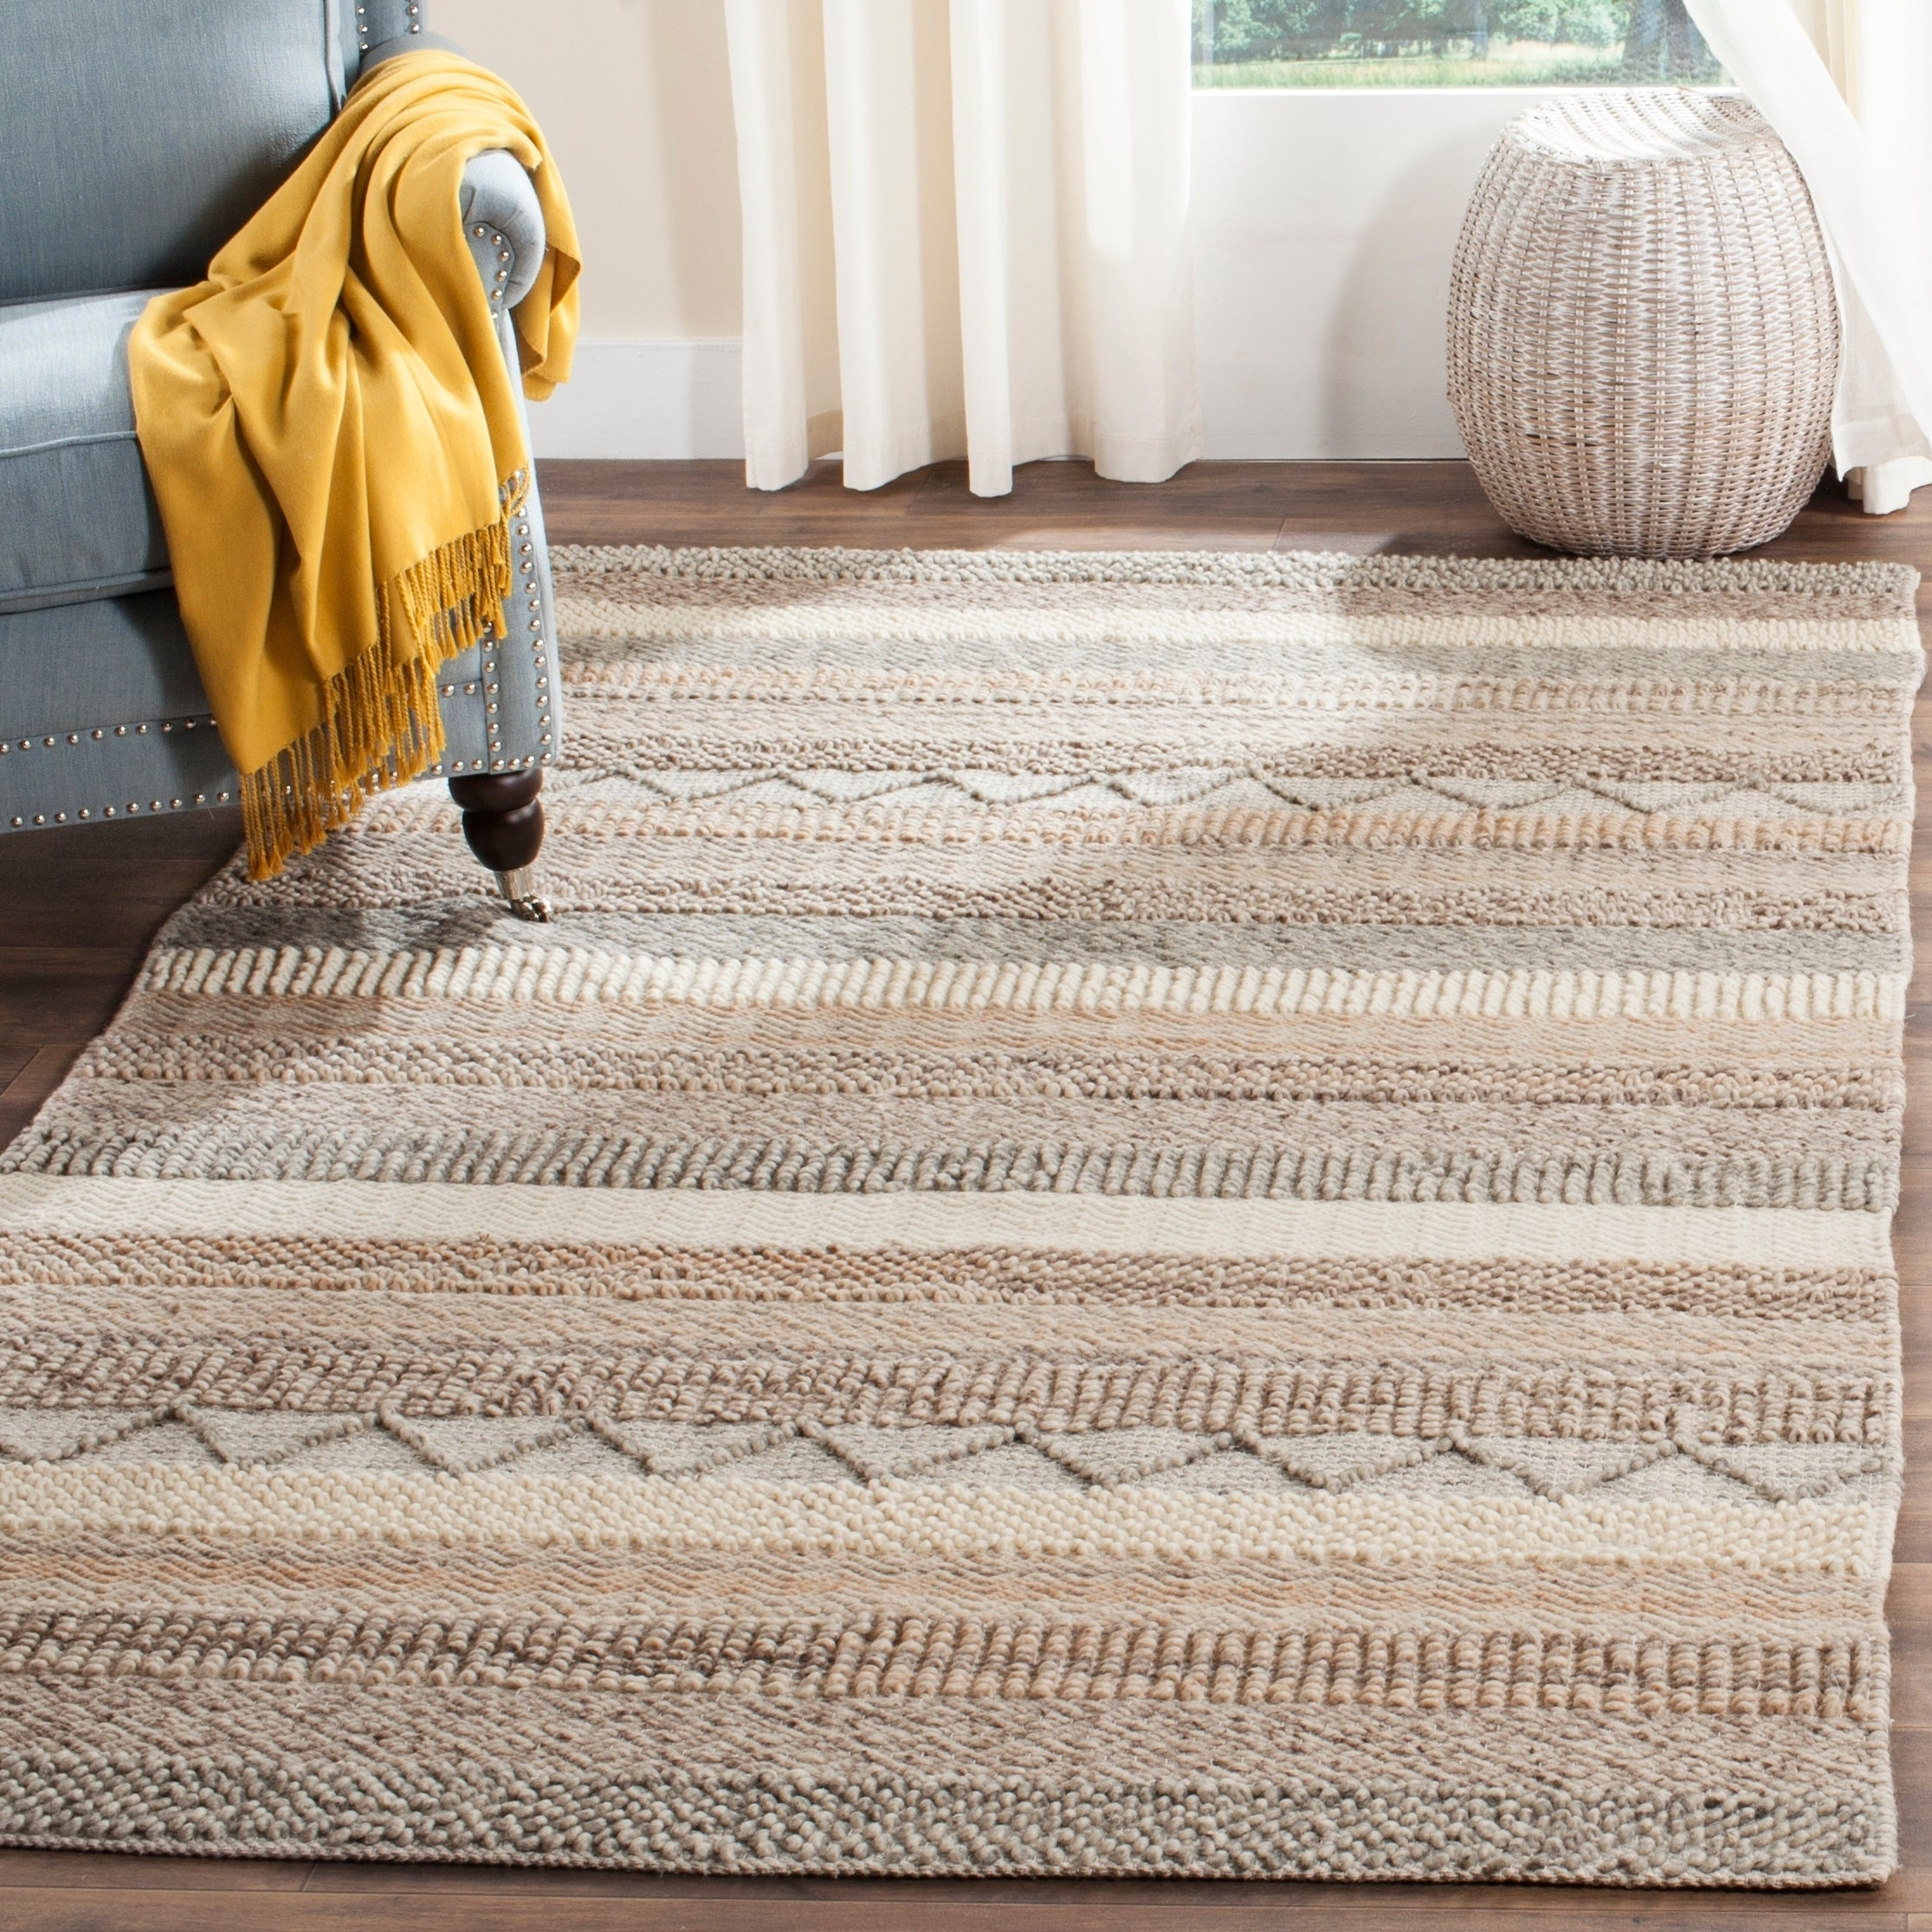 Shop Safavieh Handmade Natura Beige Wool Rug 8 X 10 On Sale